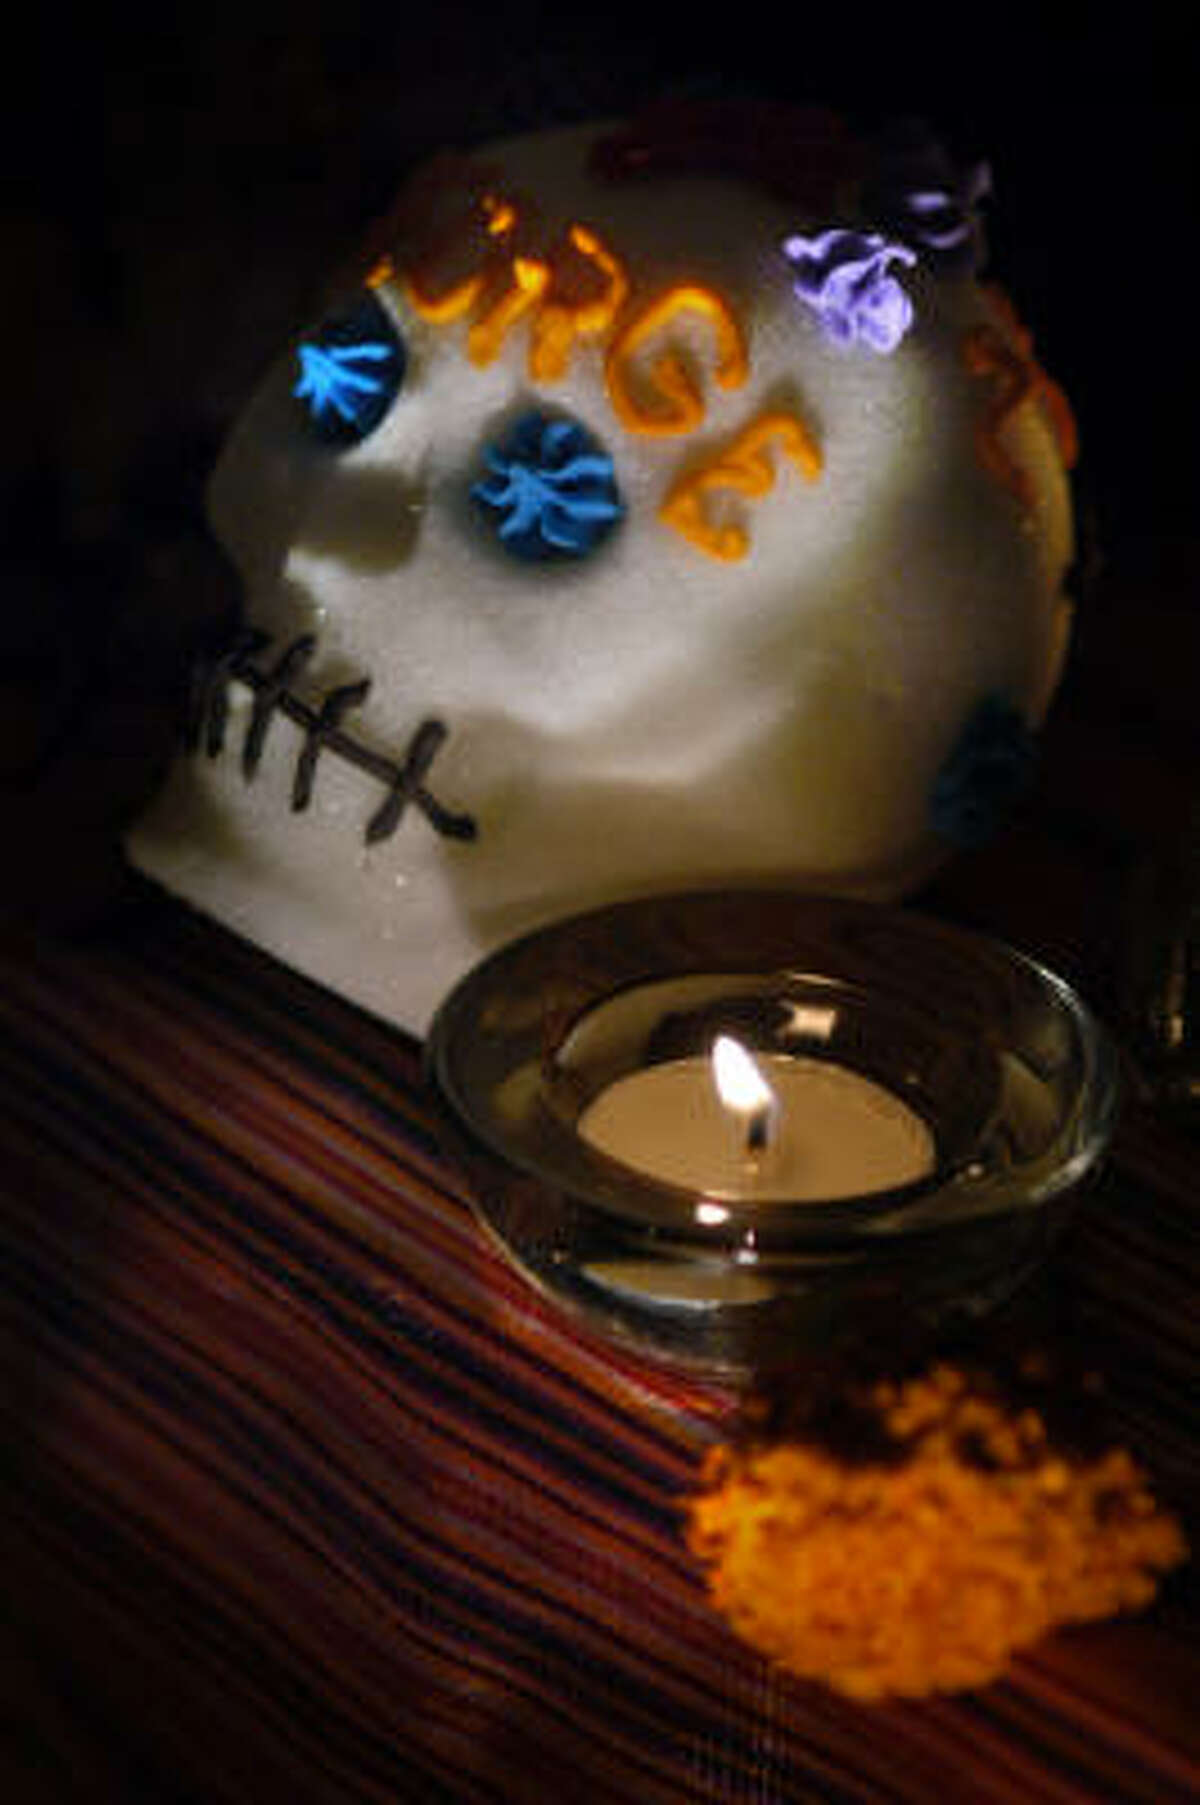 A sugar skull is one of the usual items placed on an altar in remembrance for Day of the Dead. Read about Hugo's Day of the Dead celebration here.